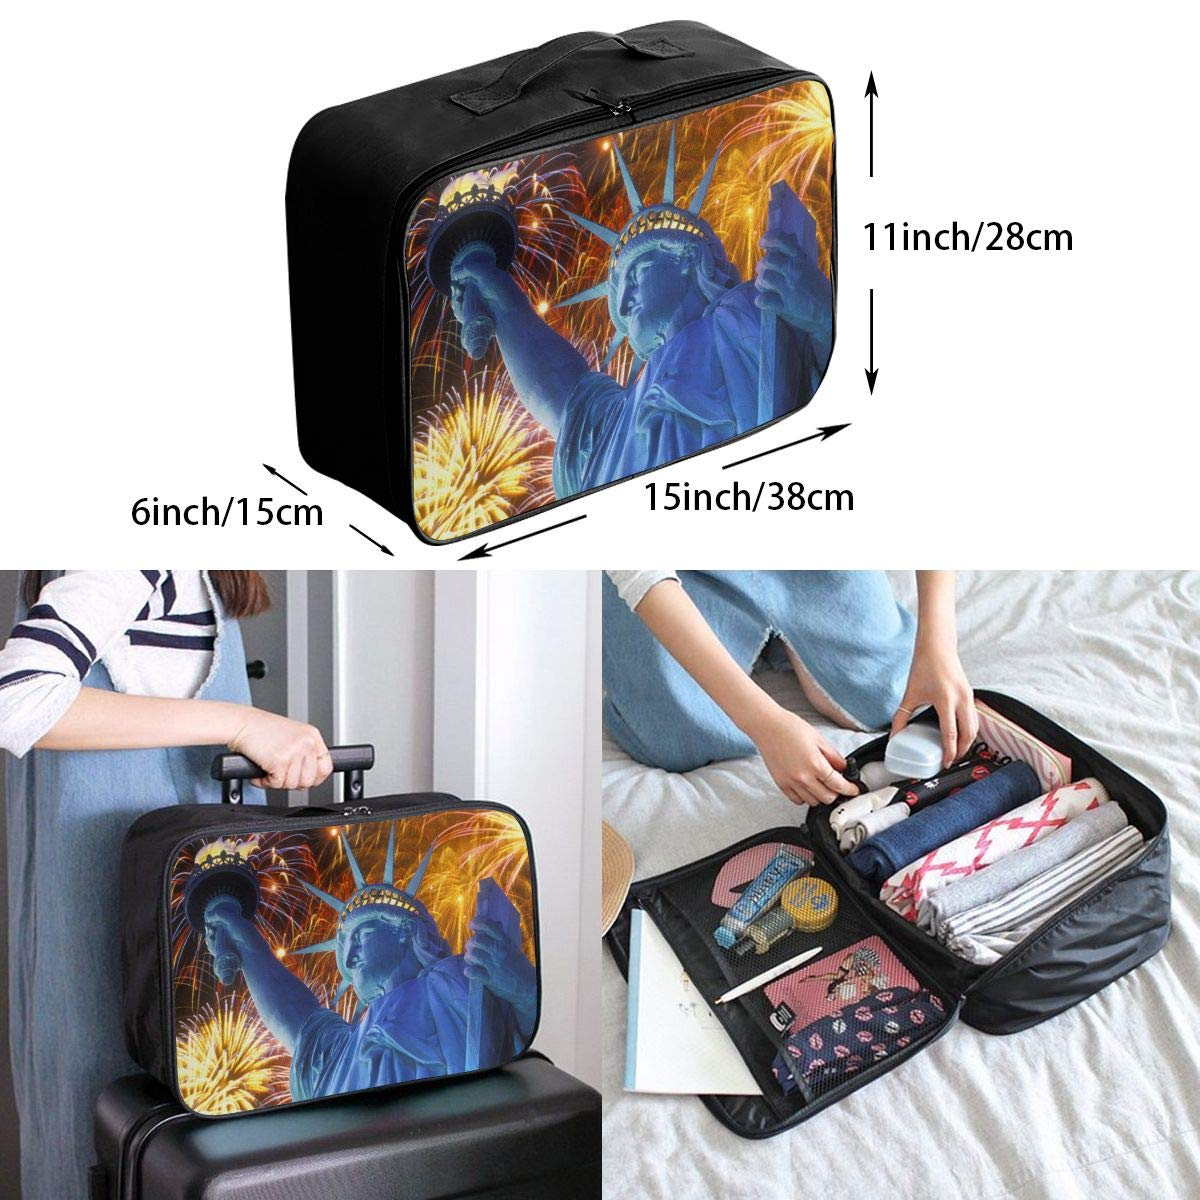 Travel Luggage Duffle Bag Lightweight Portable Handbag Statue Of Liberty Large Capacity Waterproof Foldable Storage Tote